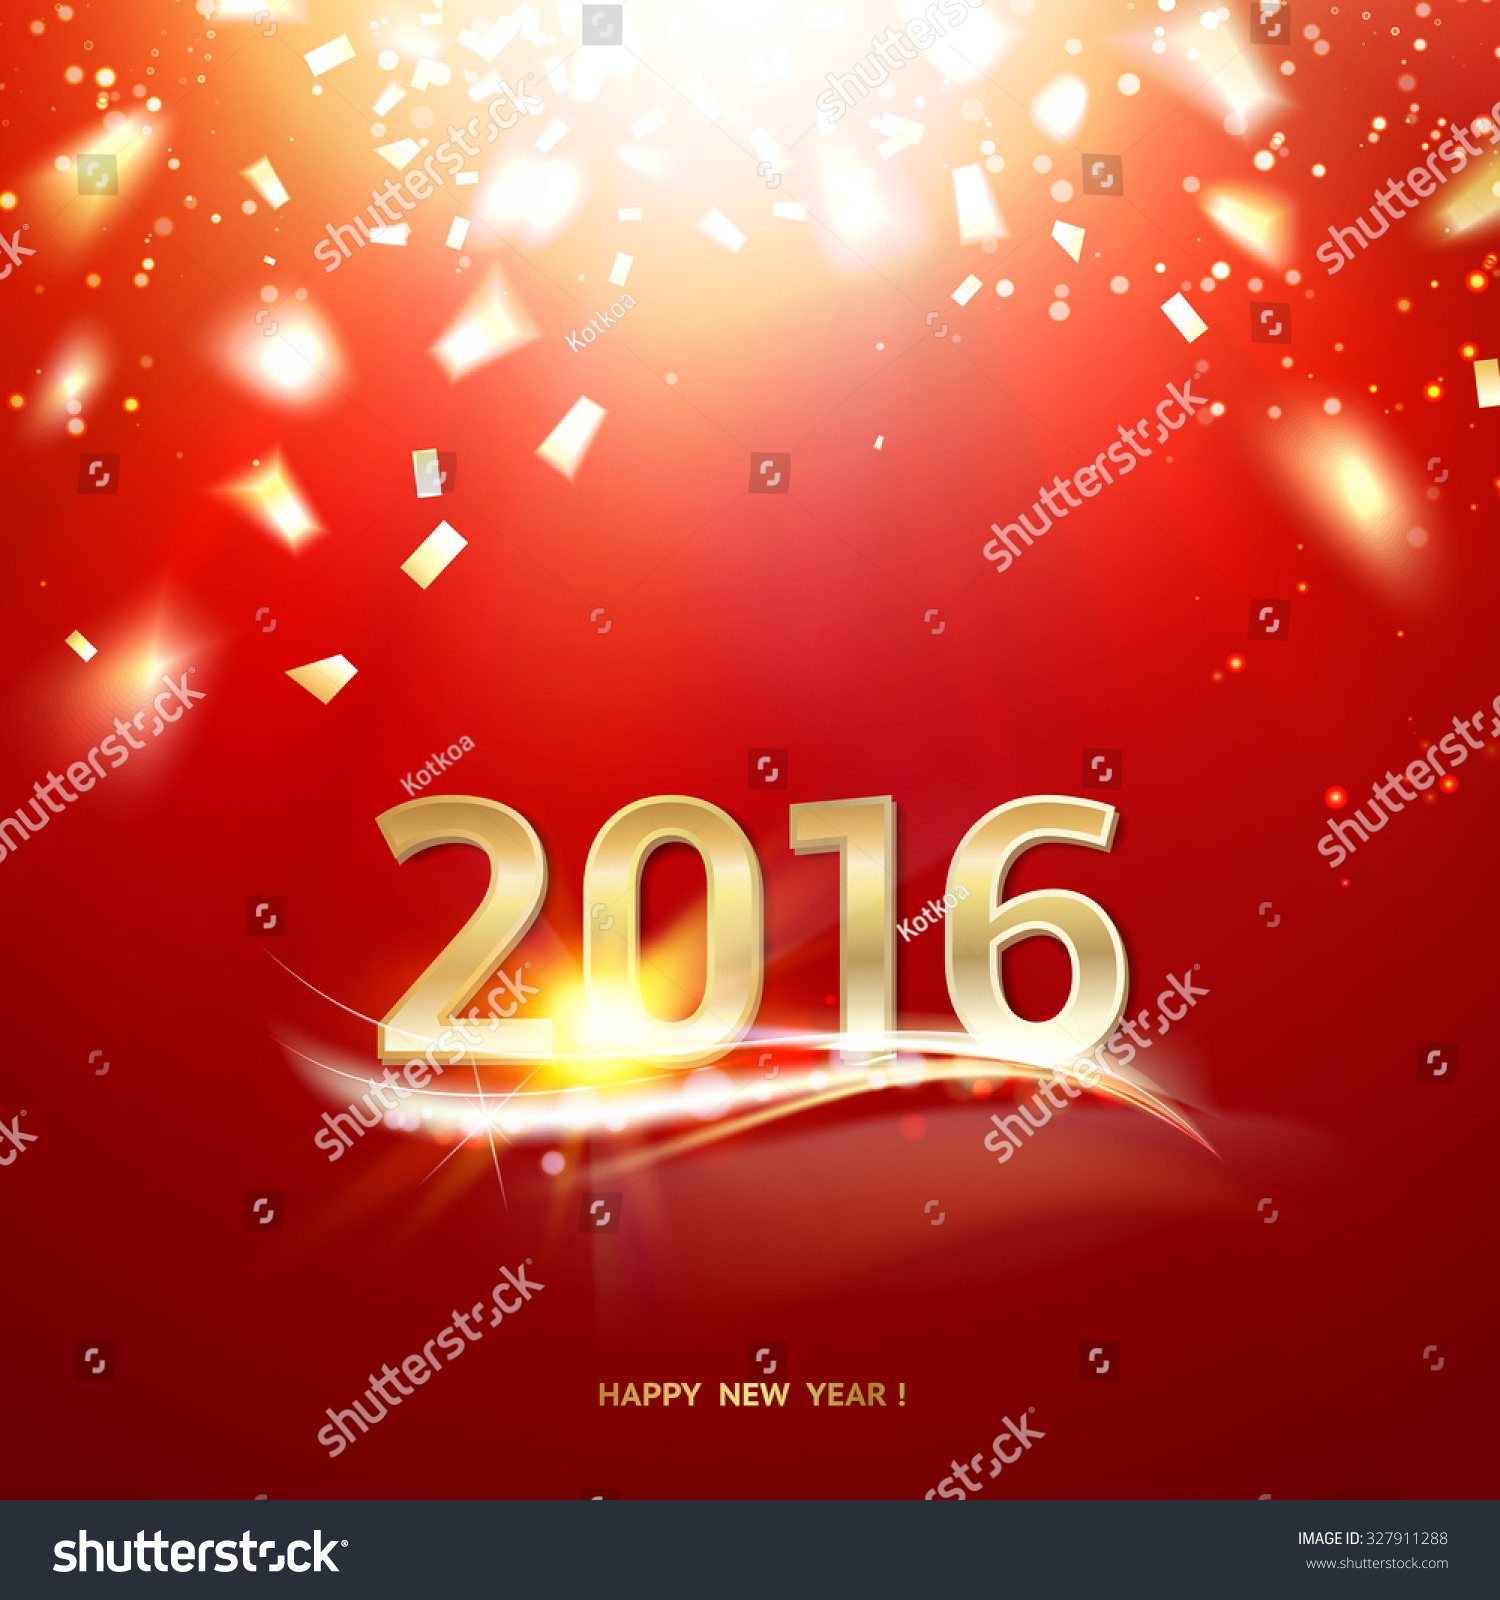 New Year Animations Free Stock Vector Happy New Year Card Gold Template